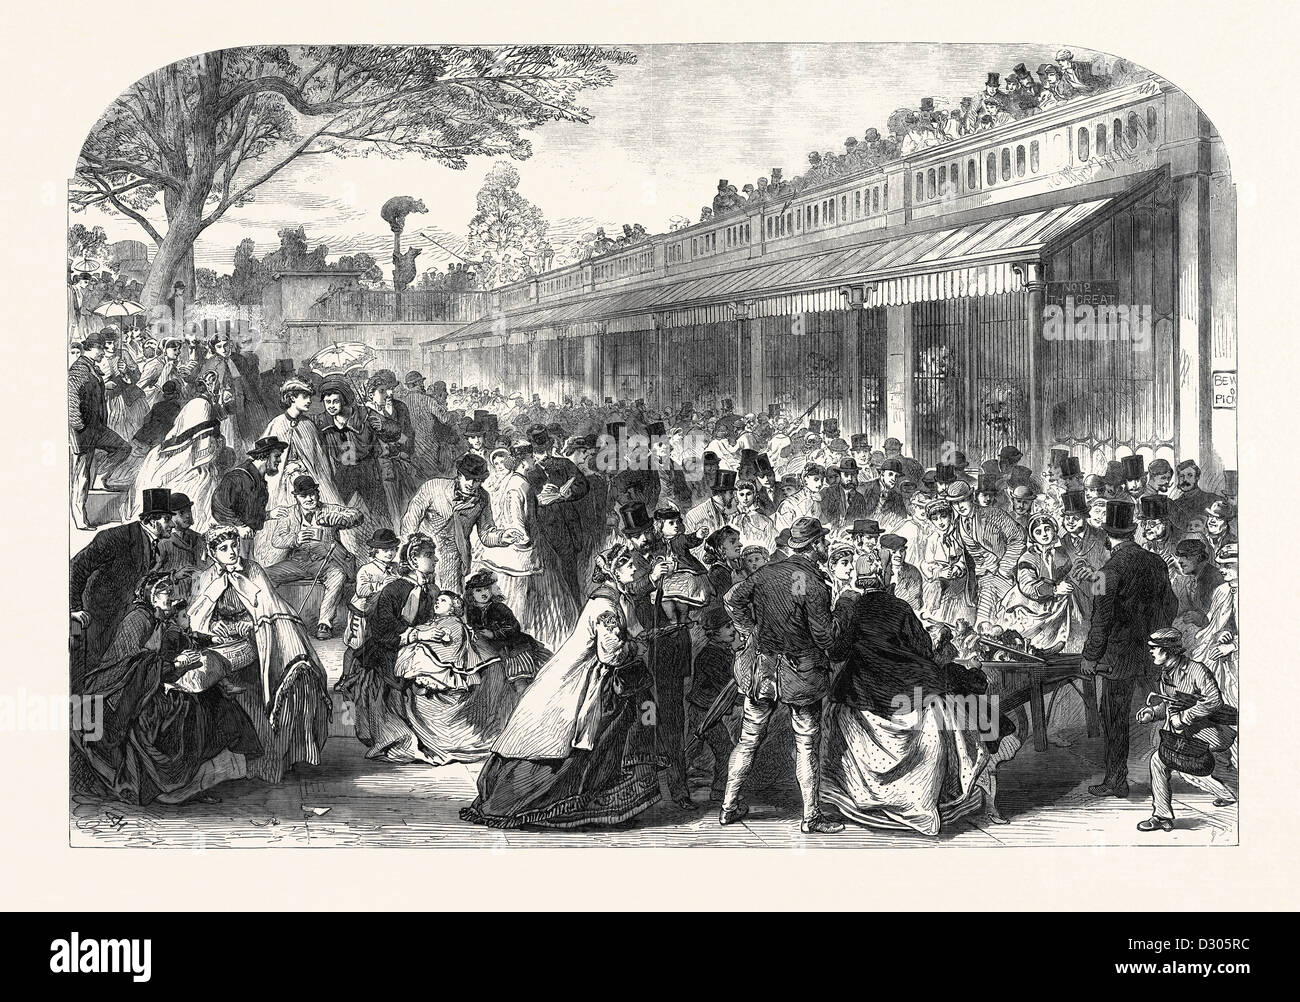 THE GARDENS OF THE ZOOLOGICAL SOCIETY REGENT'S PARK LONDON UK ON WHIT MONDAY 1866 Stock Photo